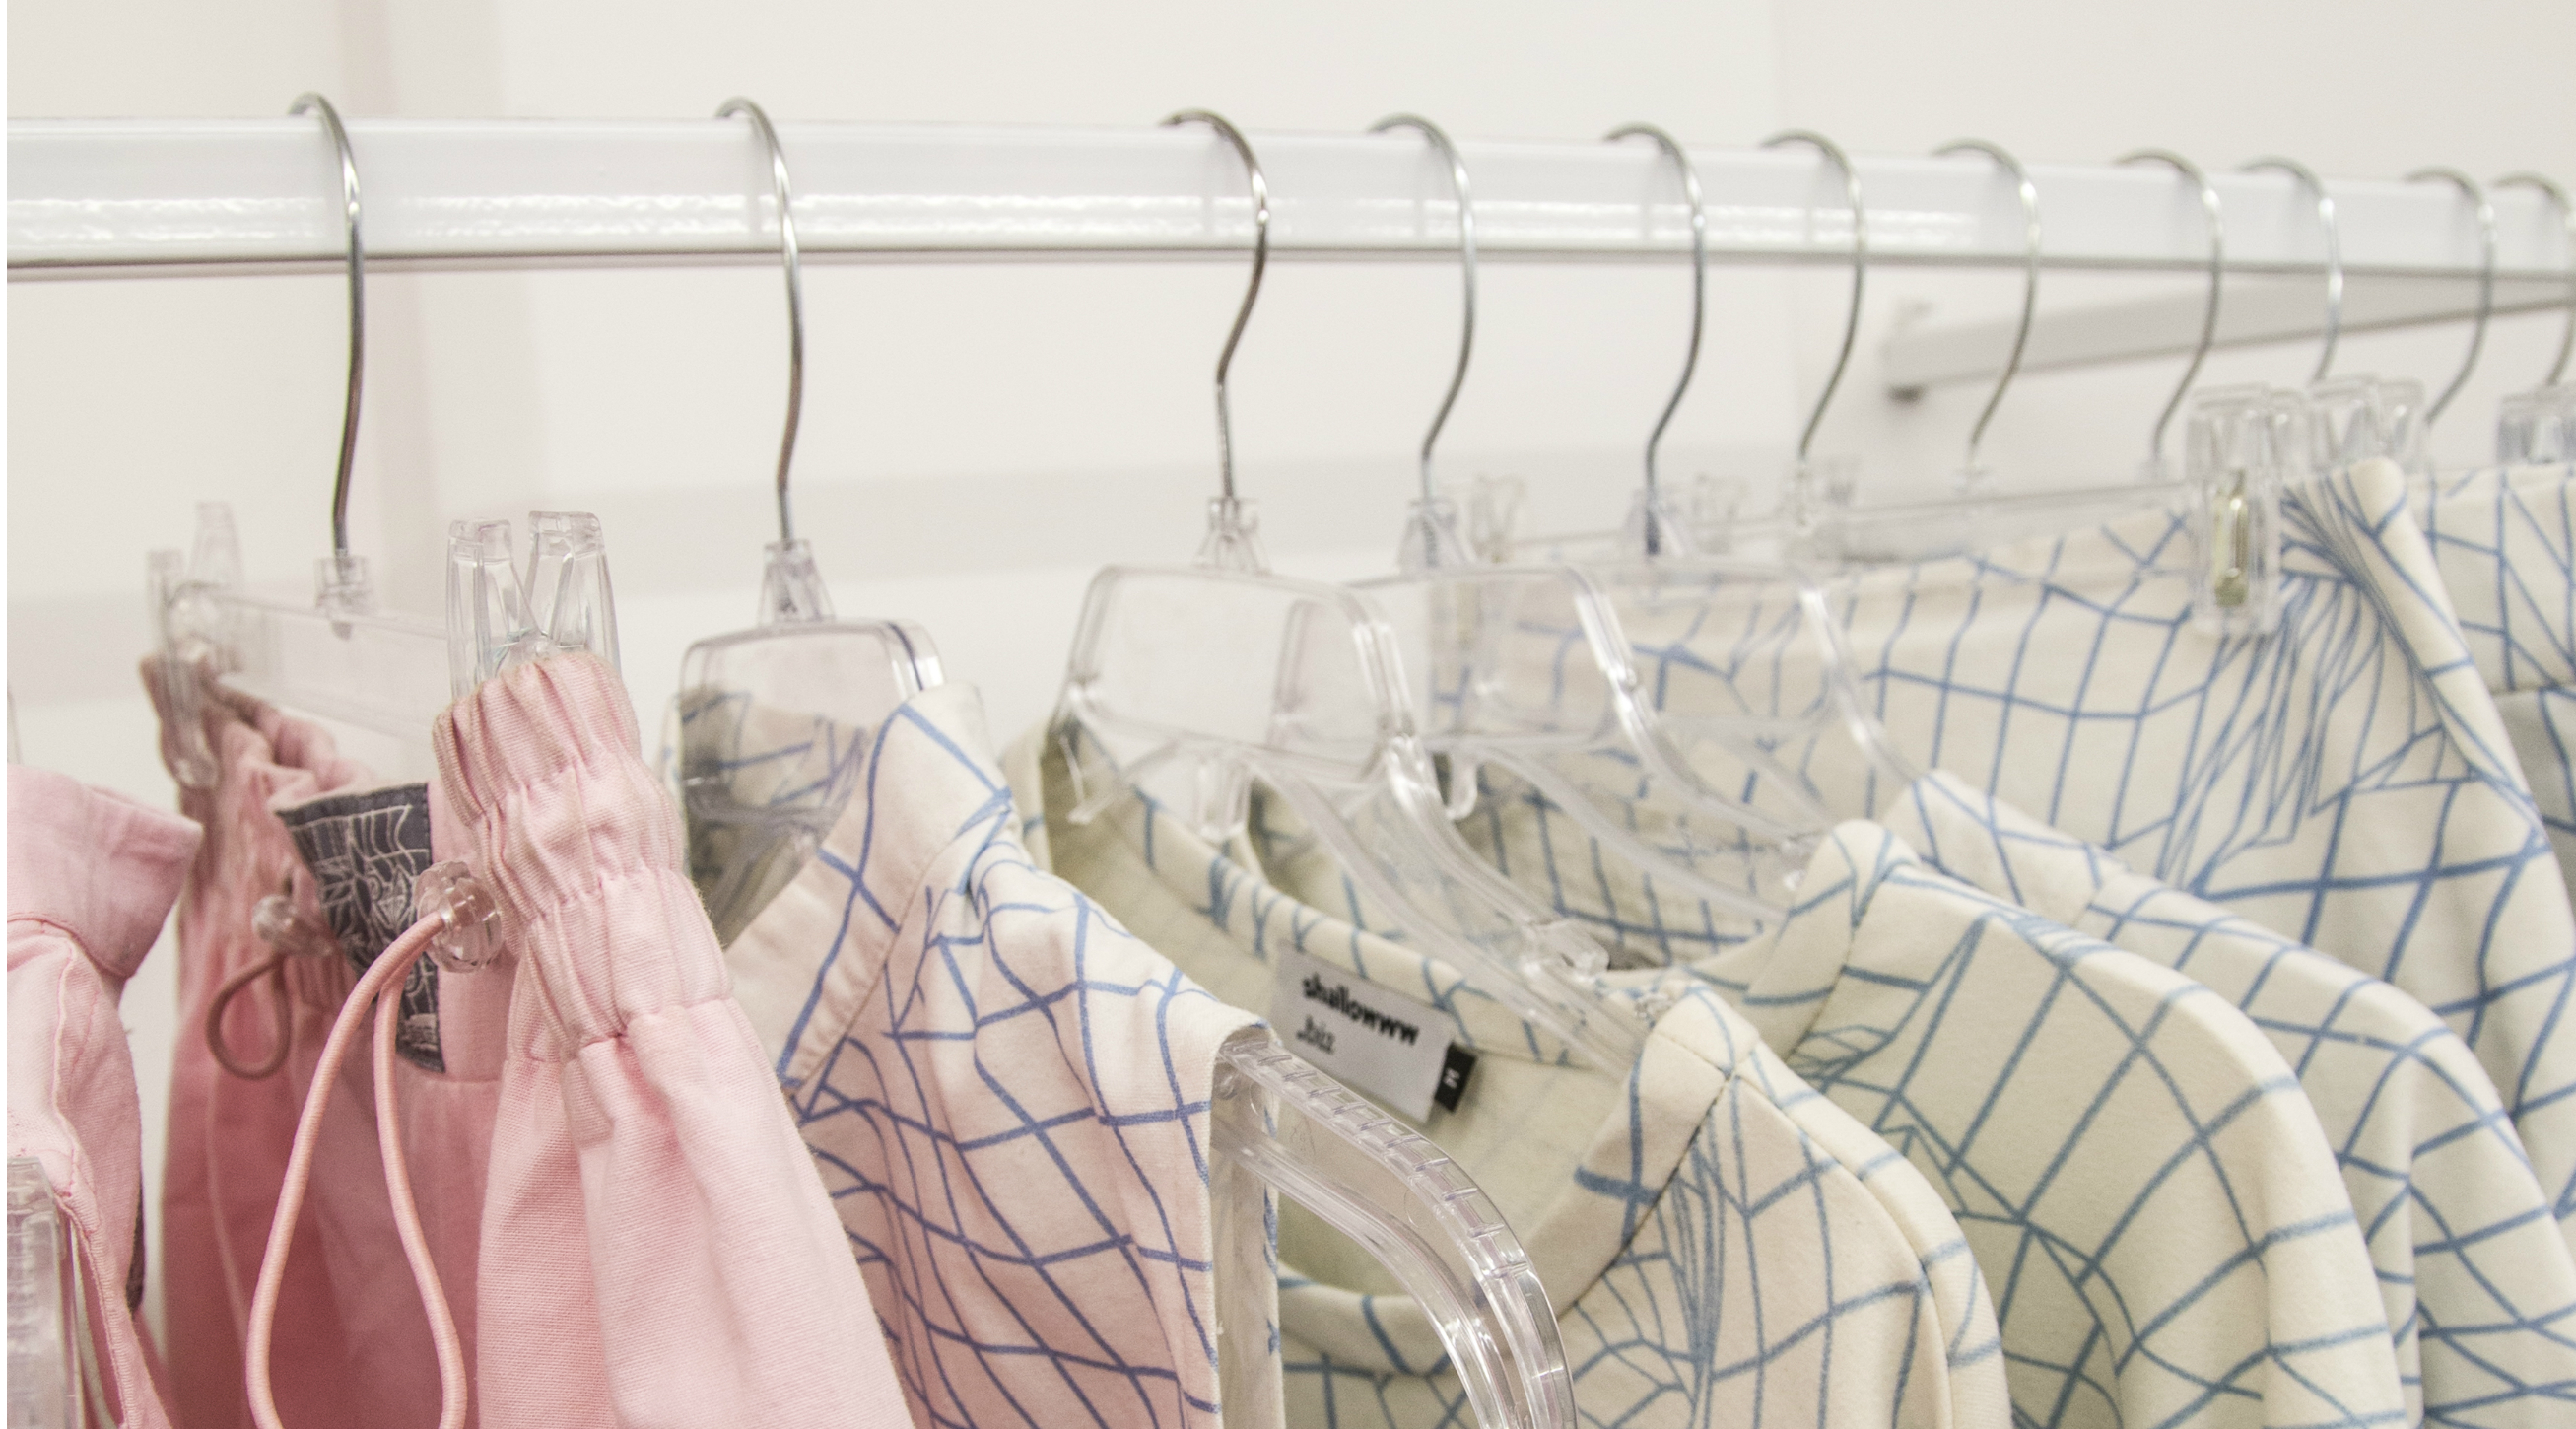 The Clothing Room